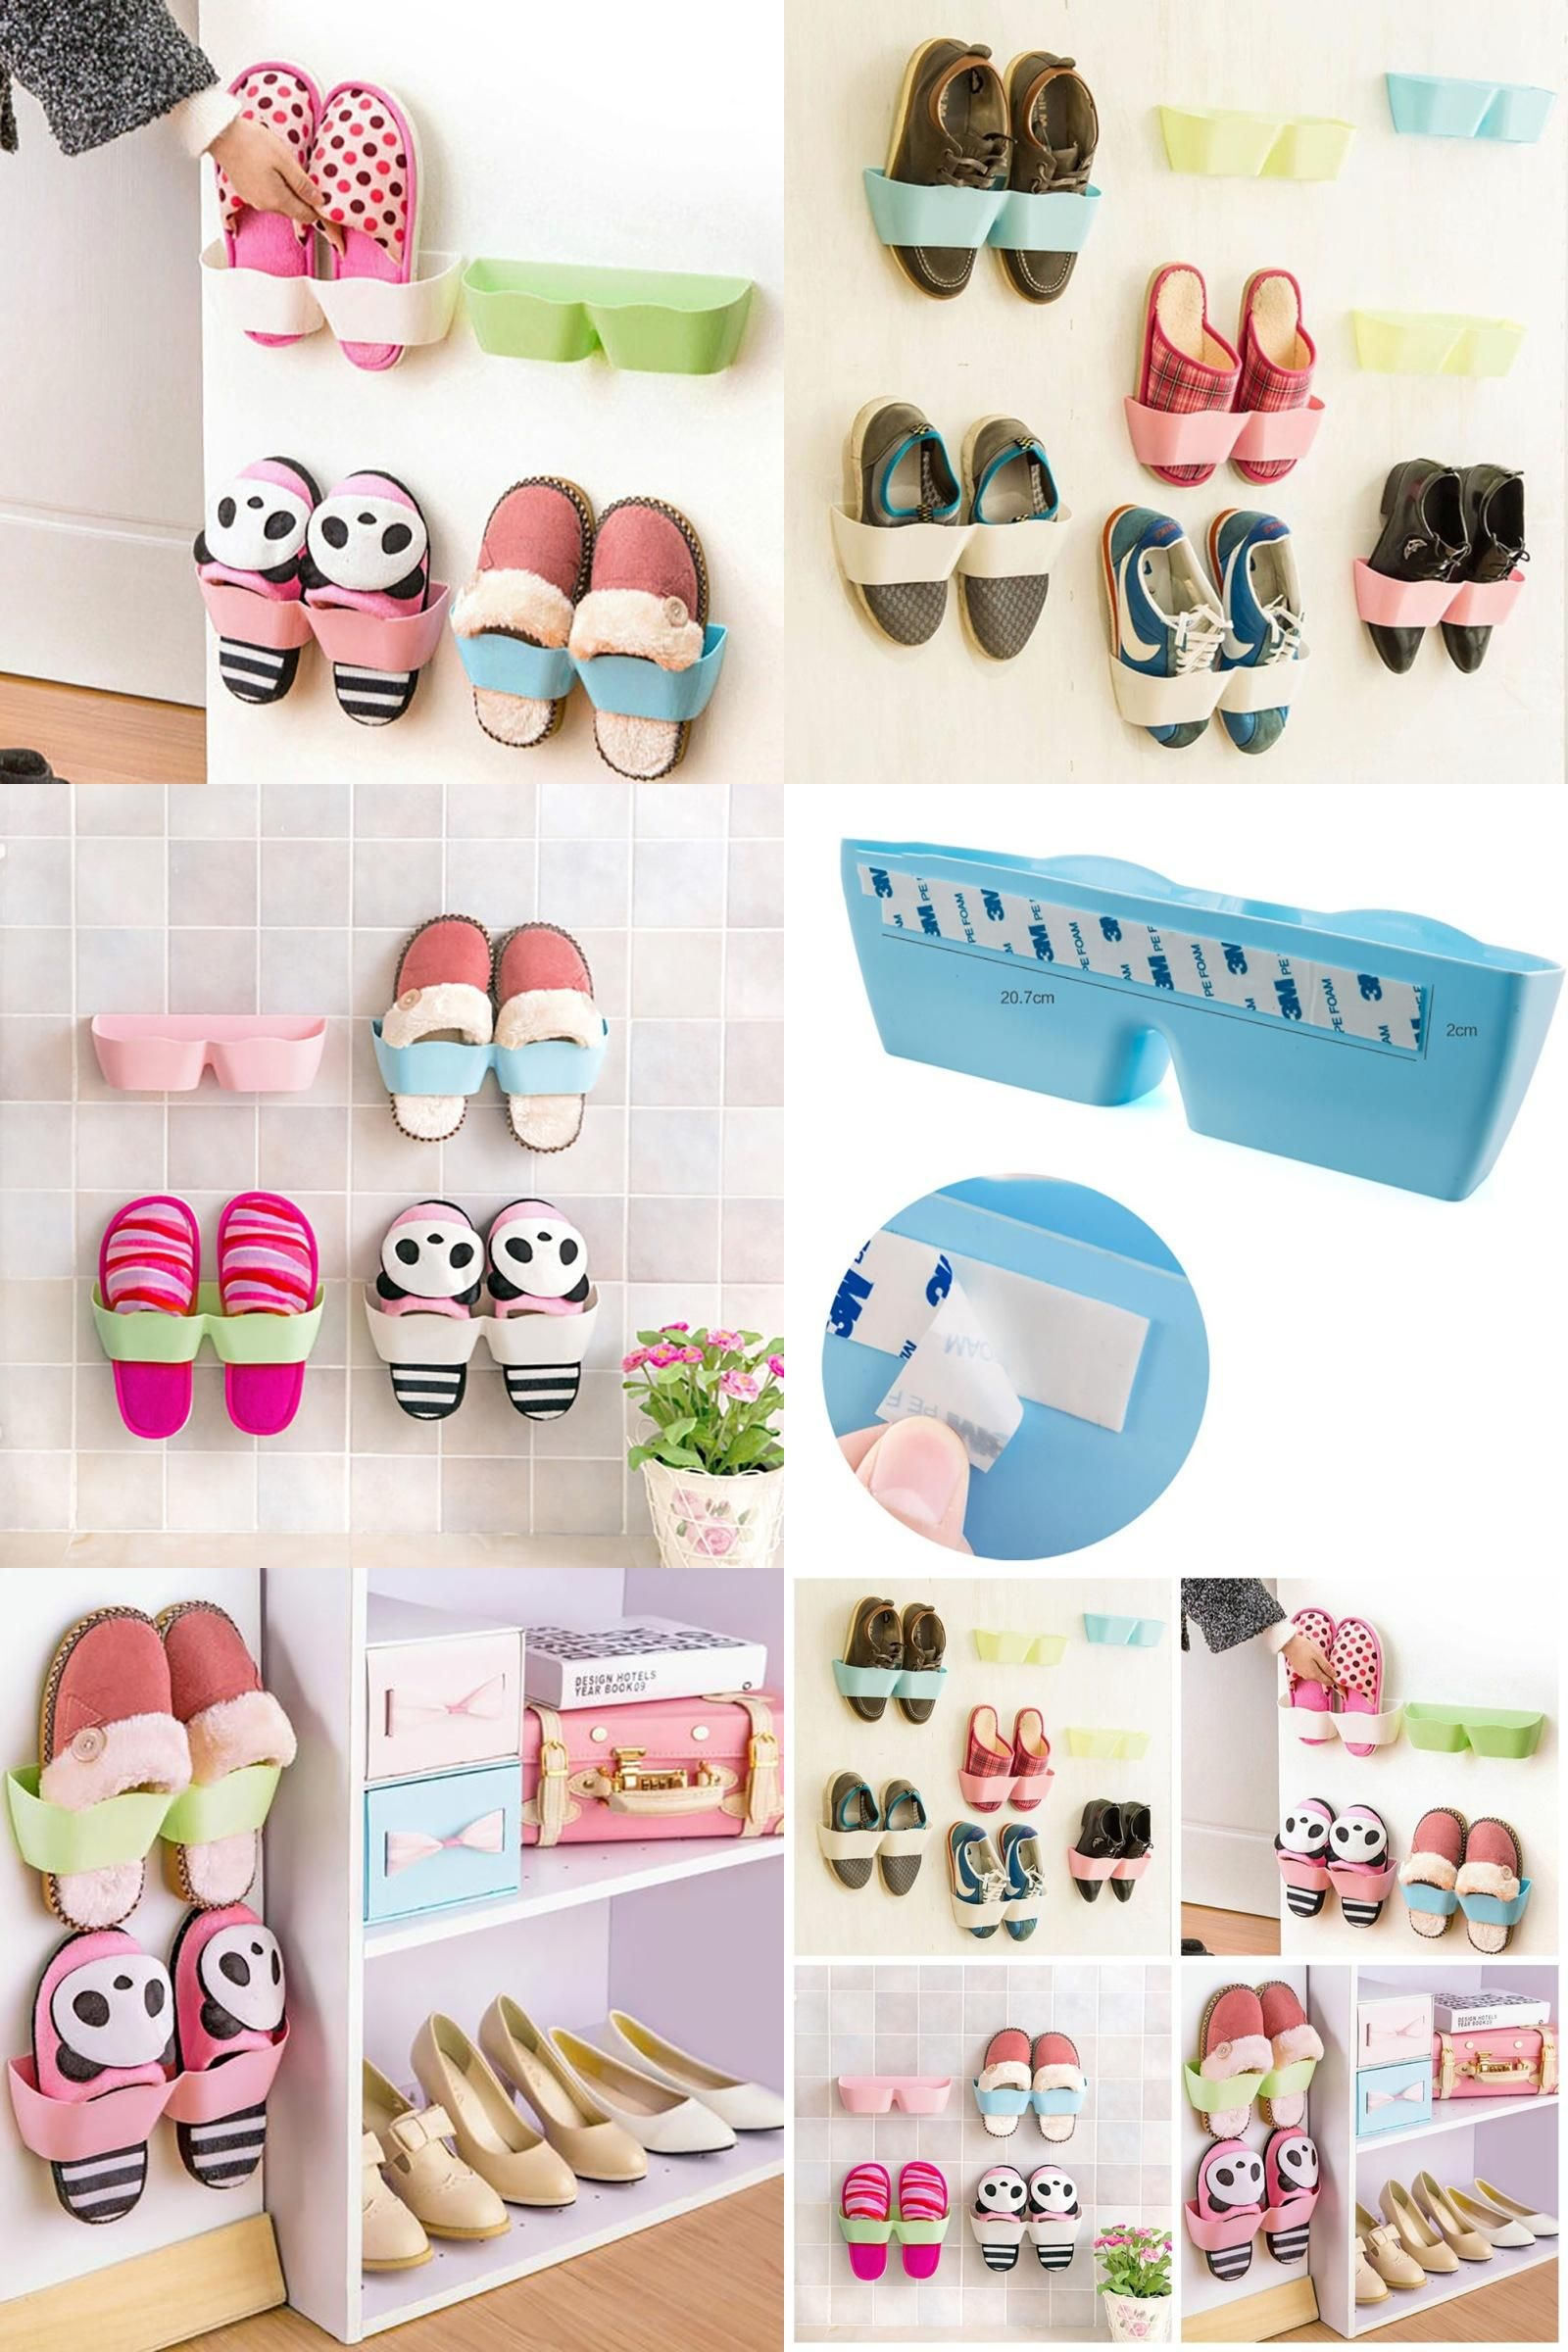 Visit to buy shoes orgnaizers plastic wall hanging shoes storage